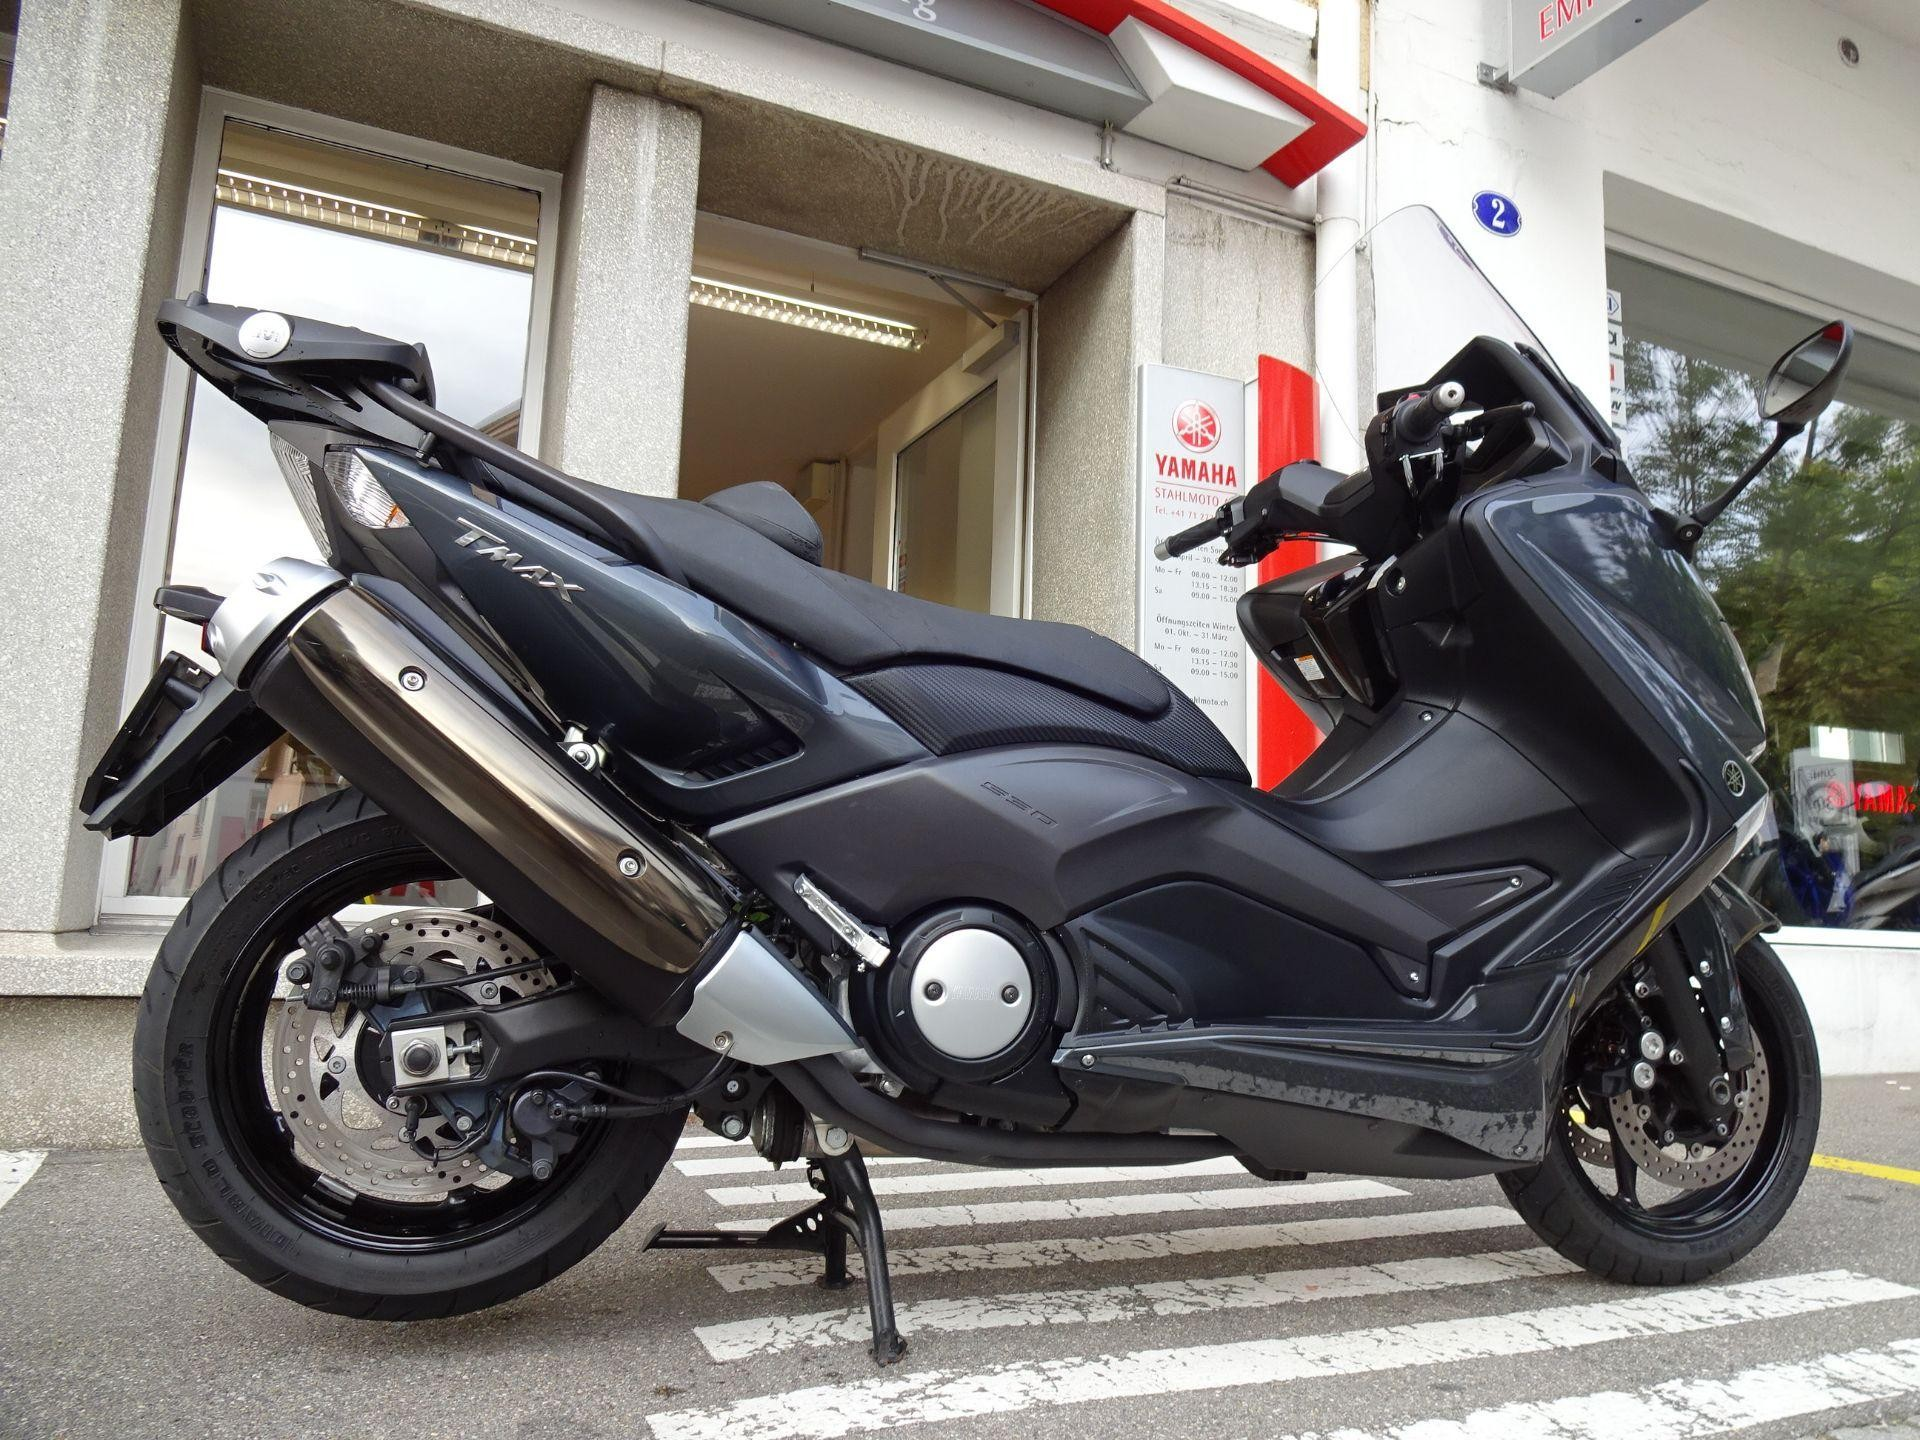 motorrad occasion kaufen yamaha xp 500 tmax a abs stahlmoto ag st gallen. Black Bedroom Furniture Sets. Home Design Ideas